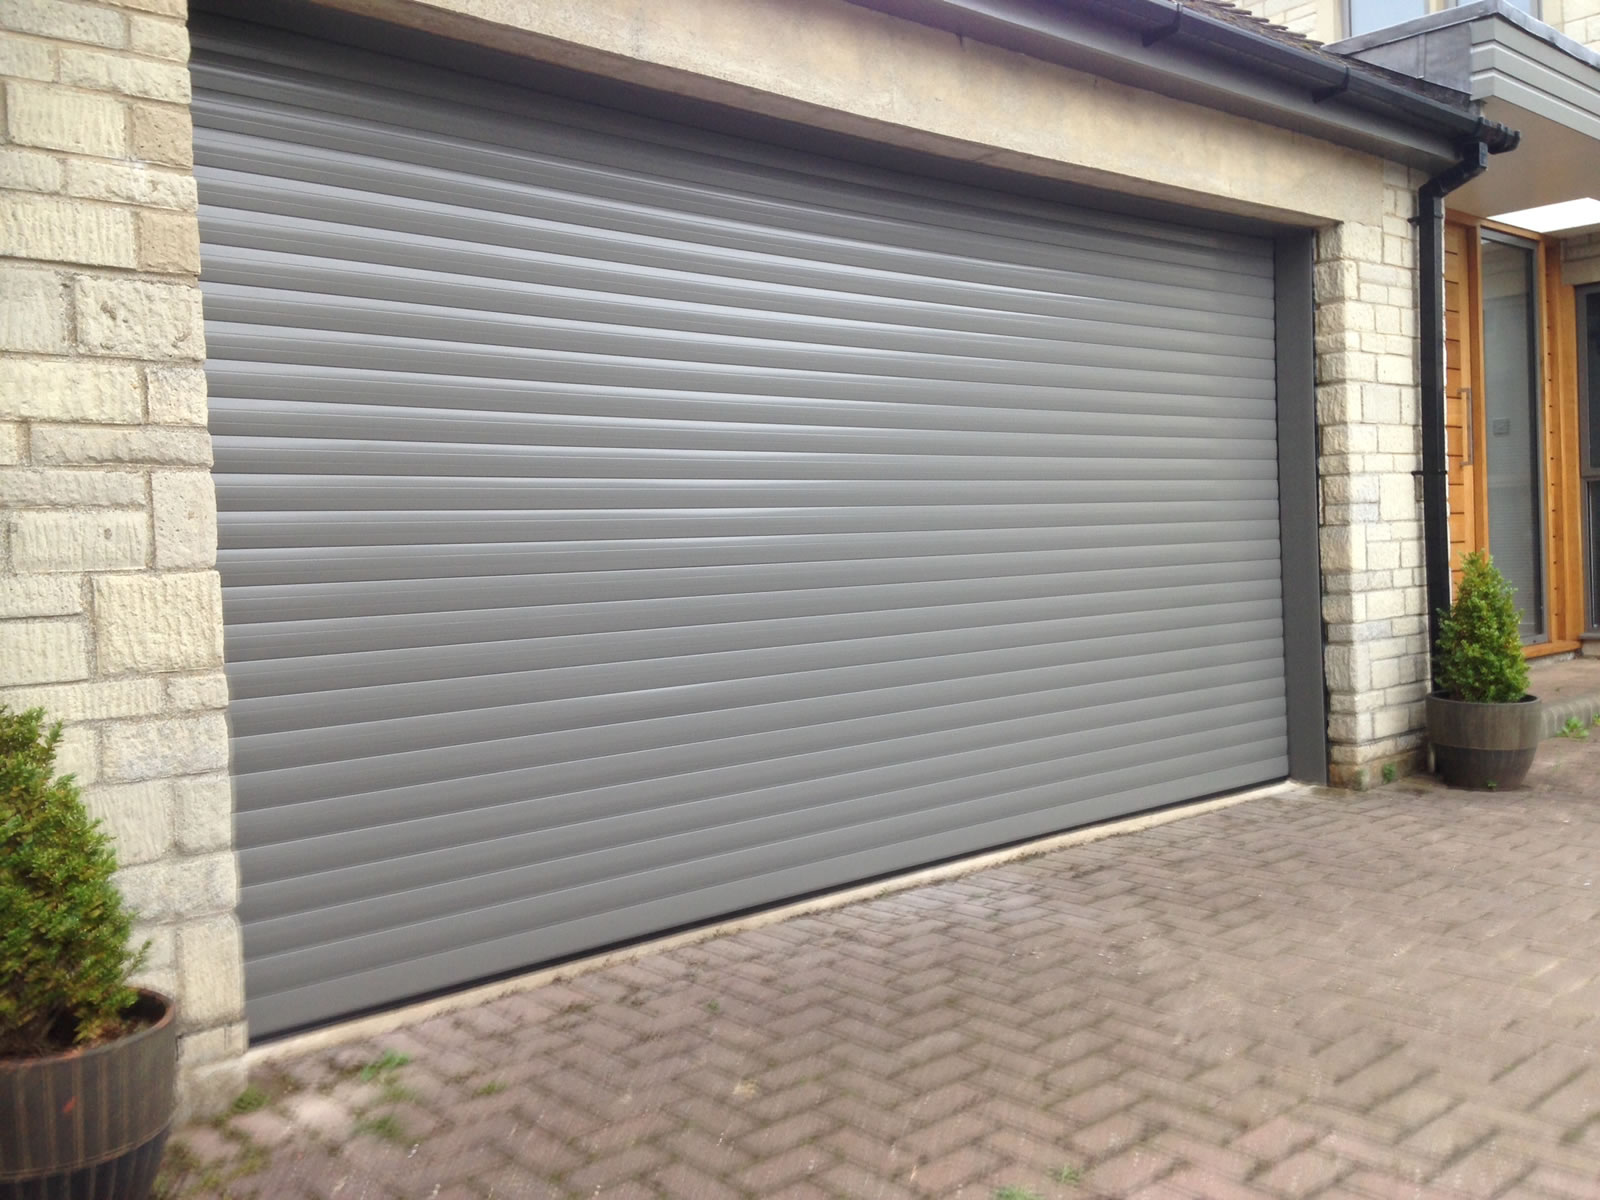 What You Should Look For In A Garage Door When Buying One Luci In